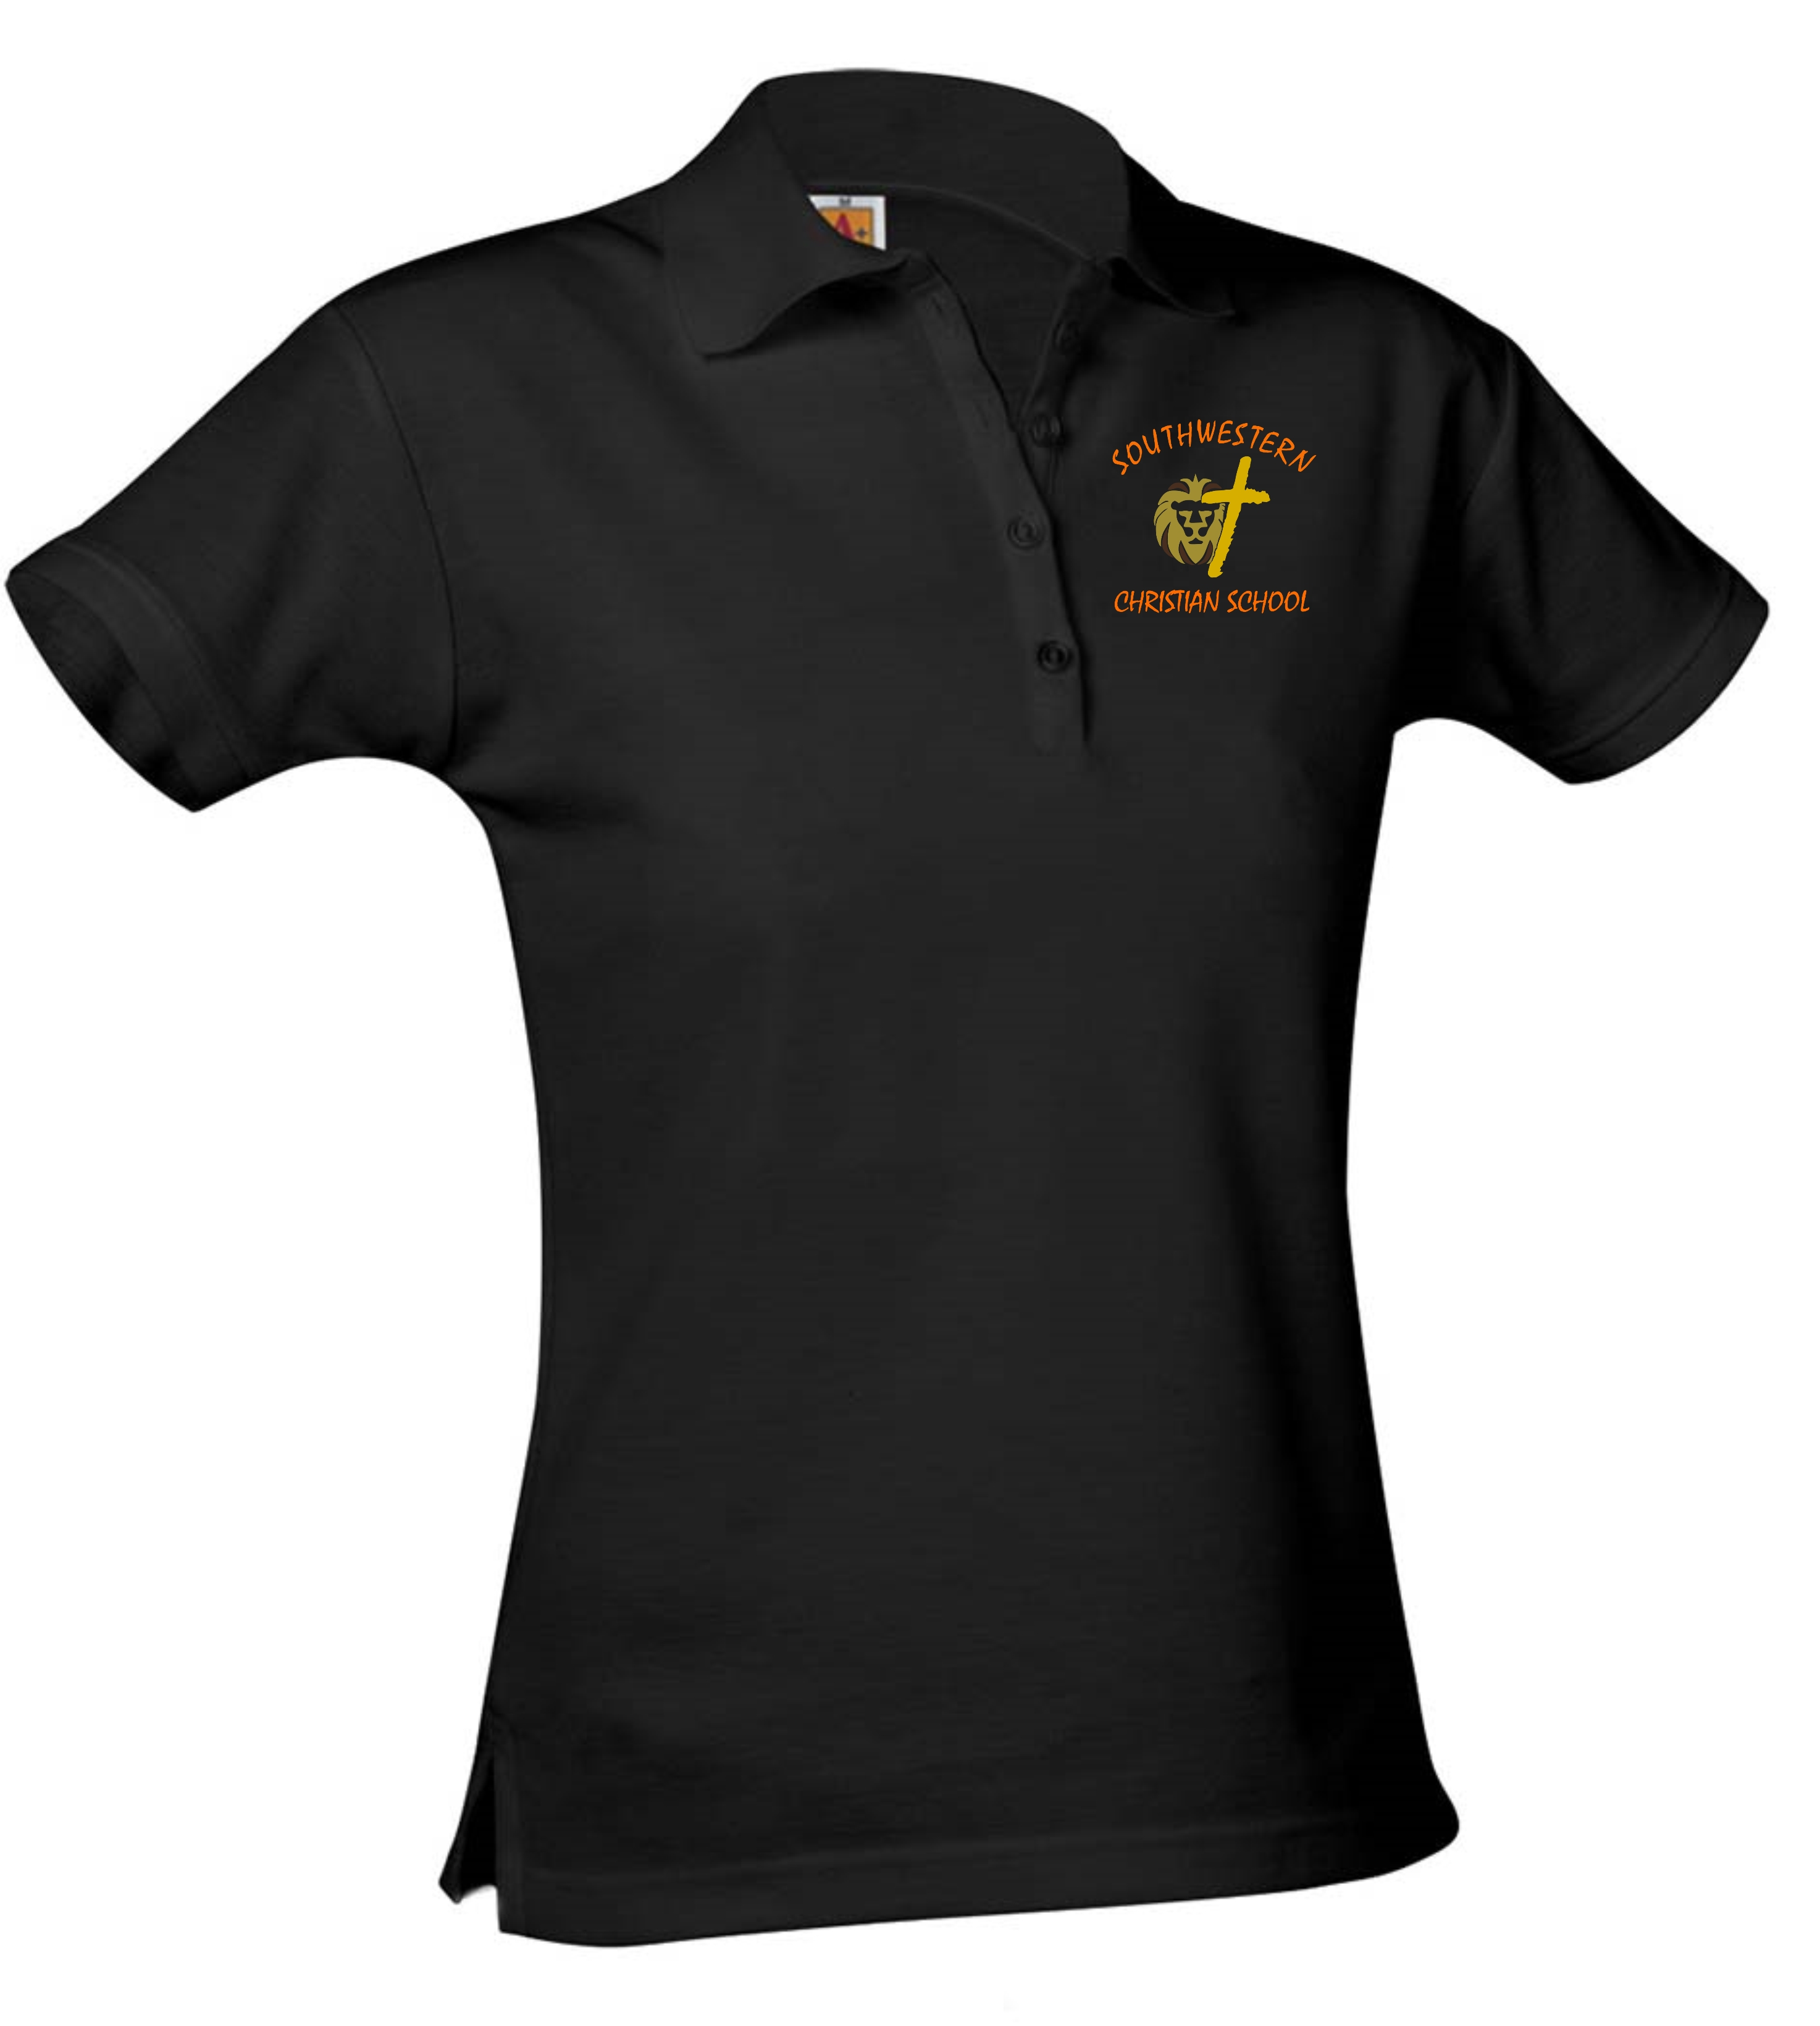 A+ Girl's Pique Polos - SWCS (Polo Color: Black, Polo Size: XS - 4/5)